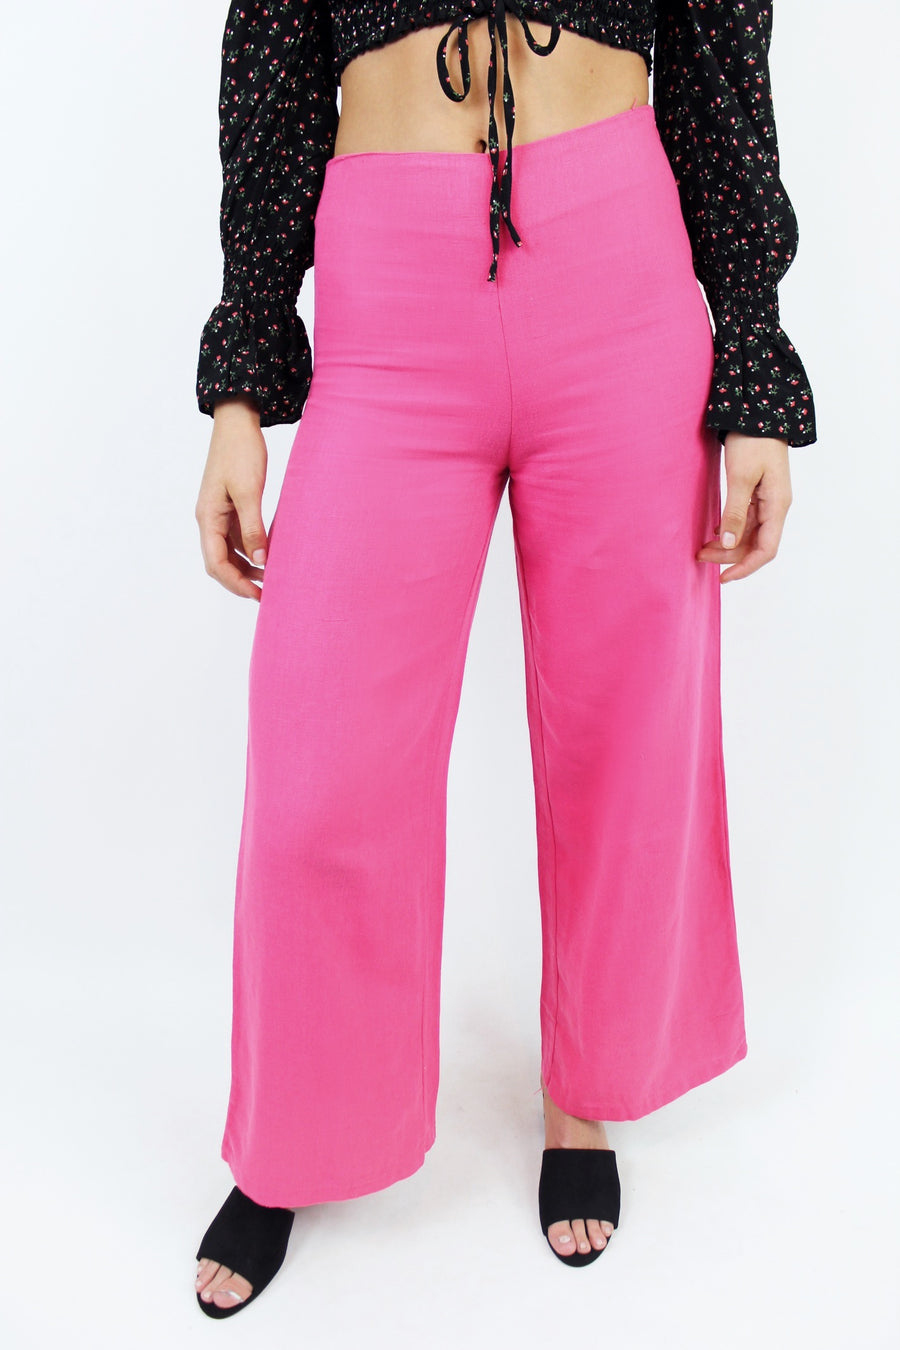 SWEET FUCHSIA PINK LINEN PANTS - Halite Clothing